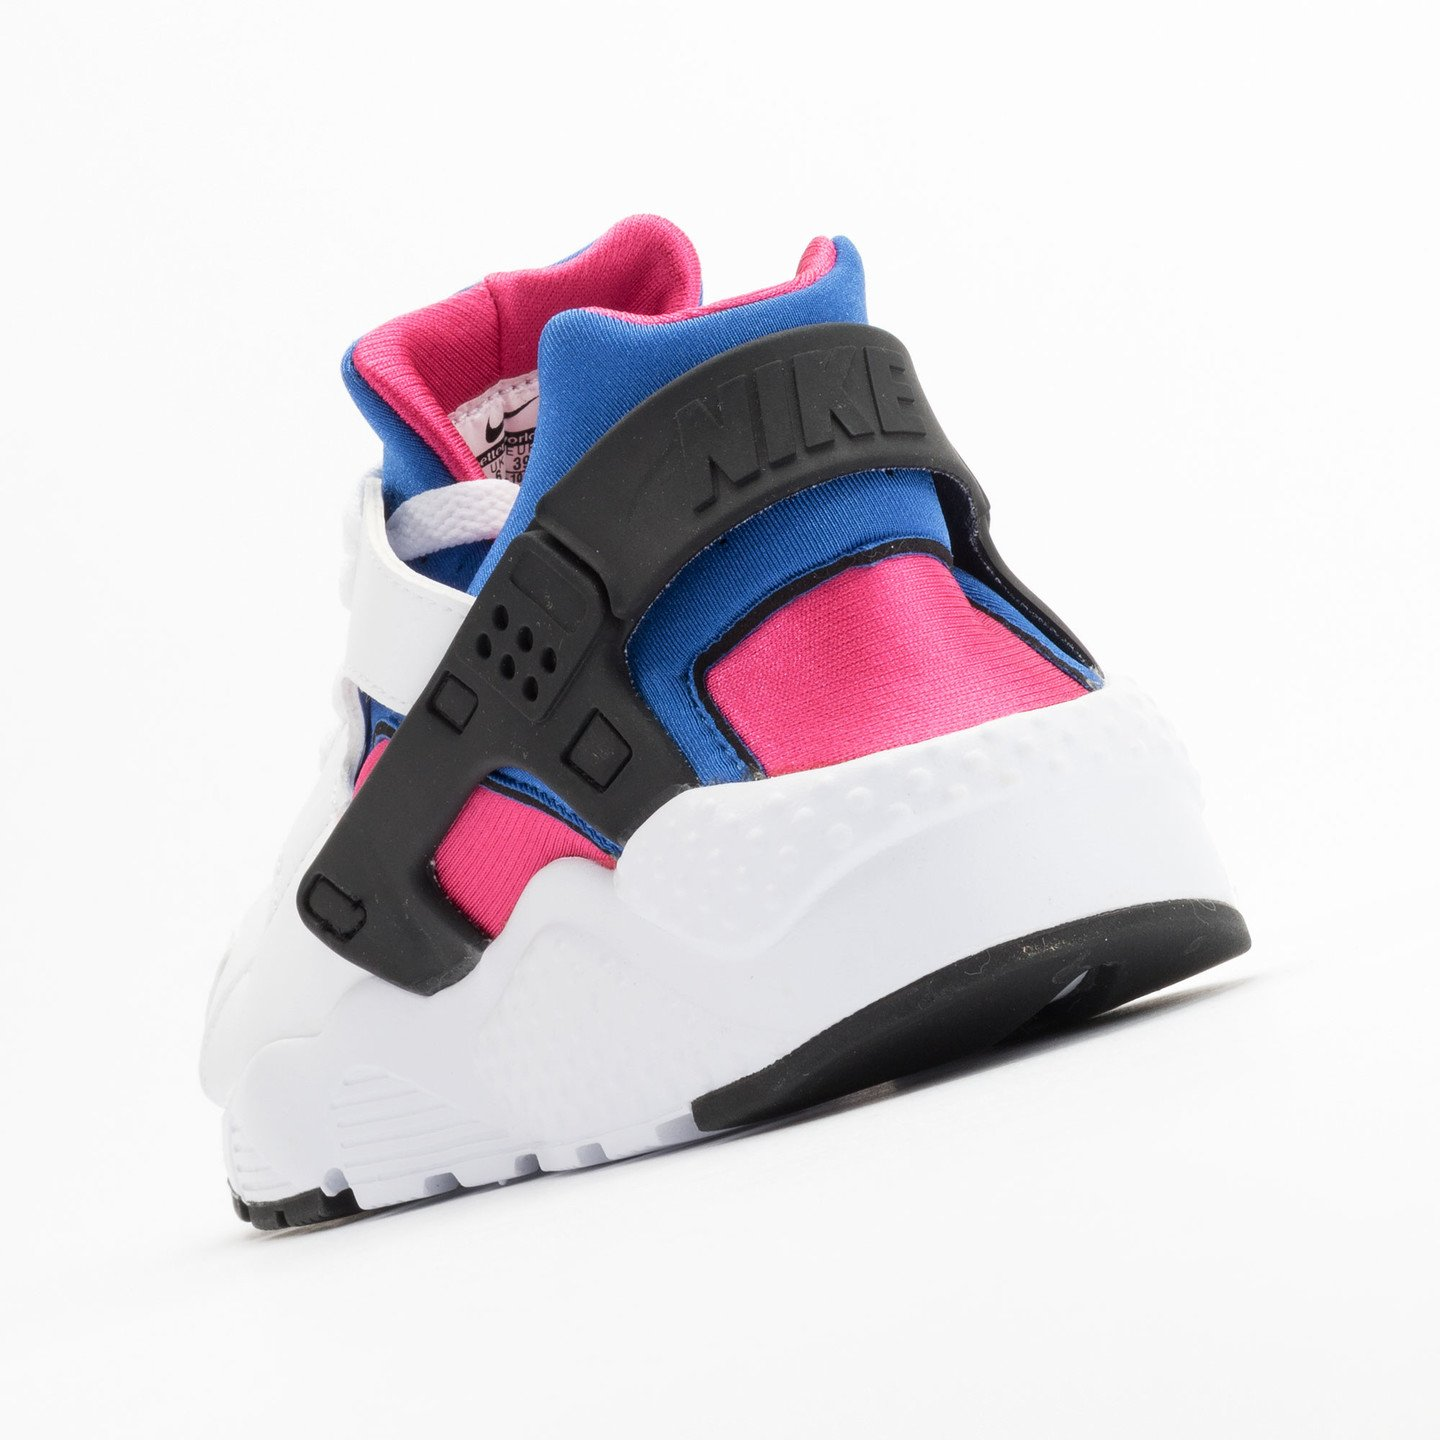 Nike Huarache Run GS White / Black / Game-Royal / Vivid-Pink 654275-106-39